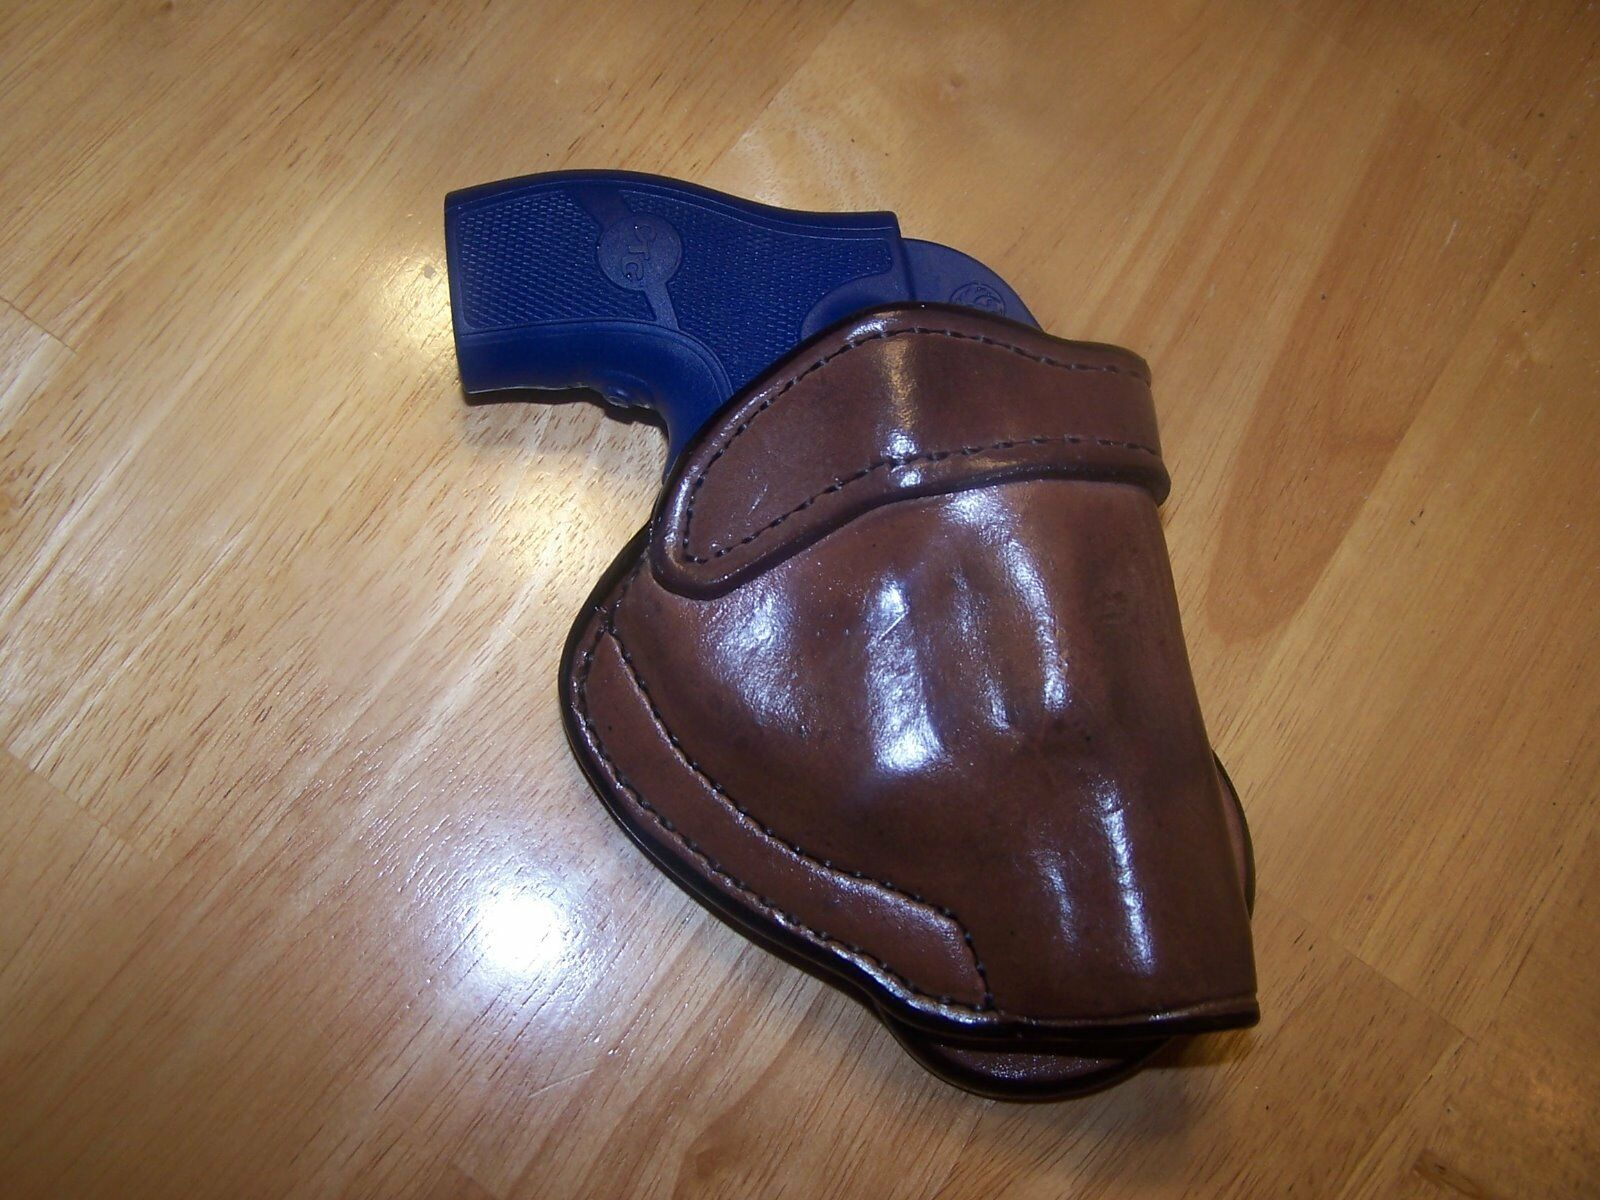 Ruger LCR Paddle Holster  - With or without Crimson Trace Laser - R H - Tan